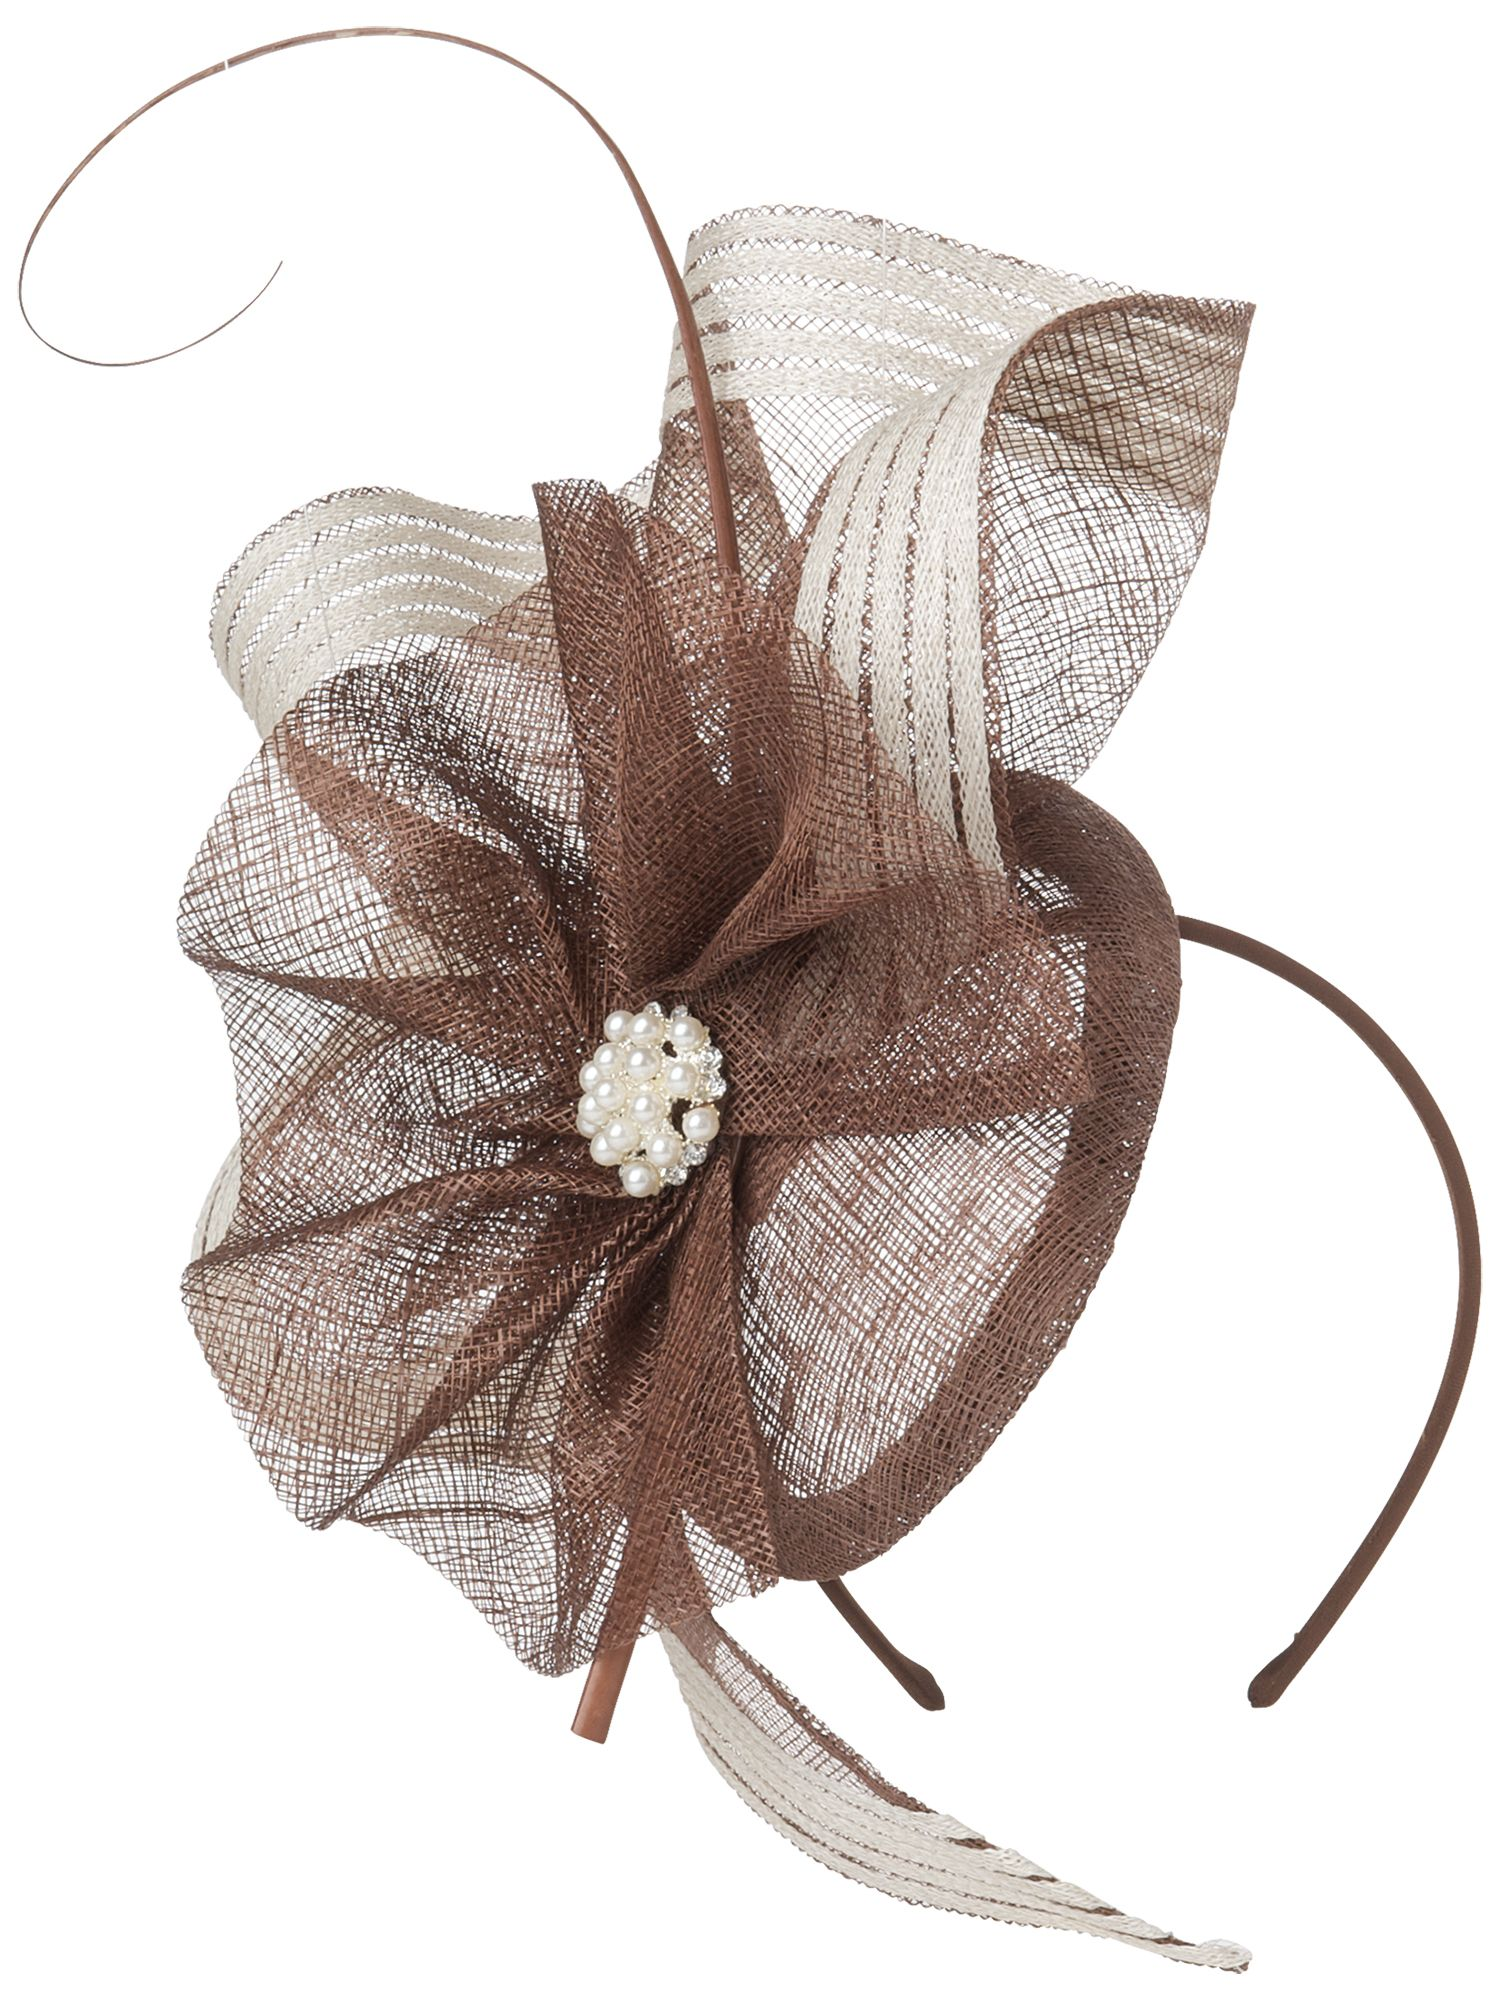 Gracie fascinator